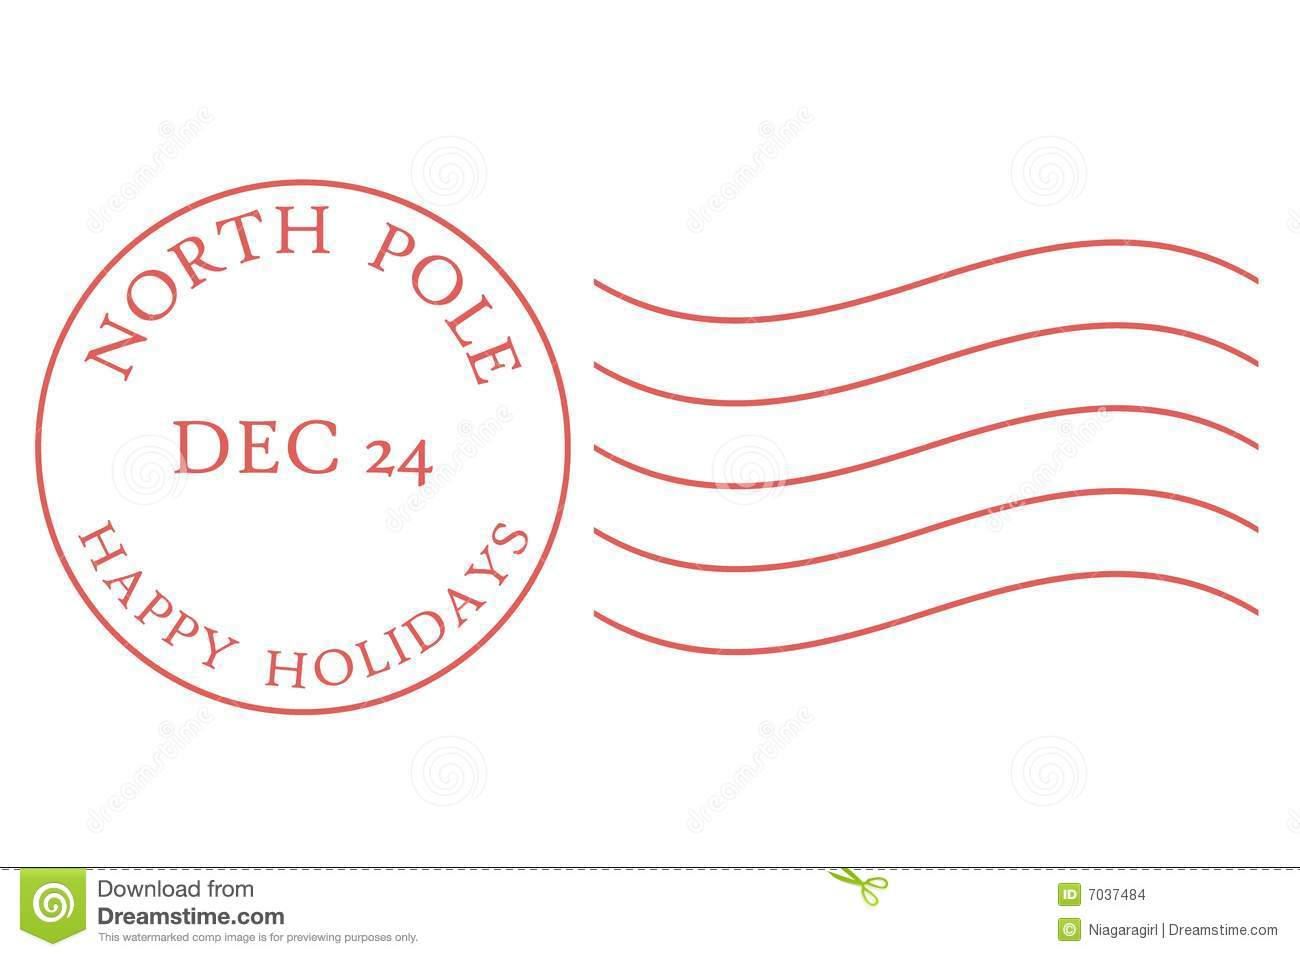 North Pole Postmark Clip Art.